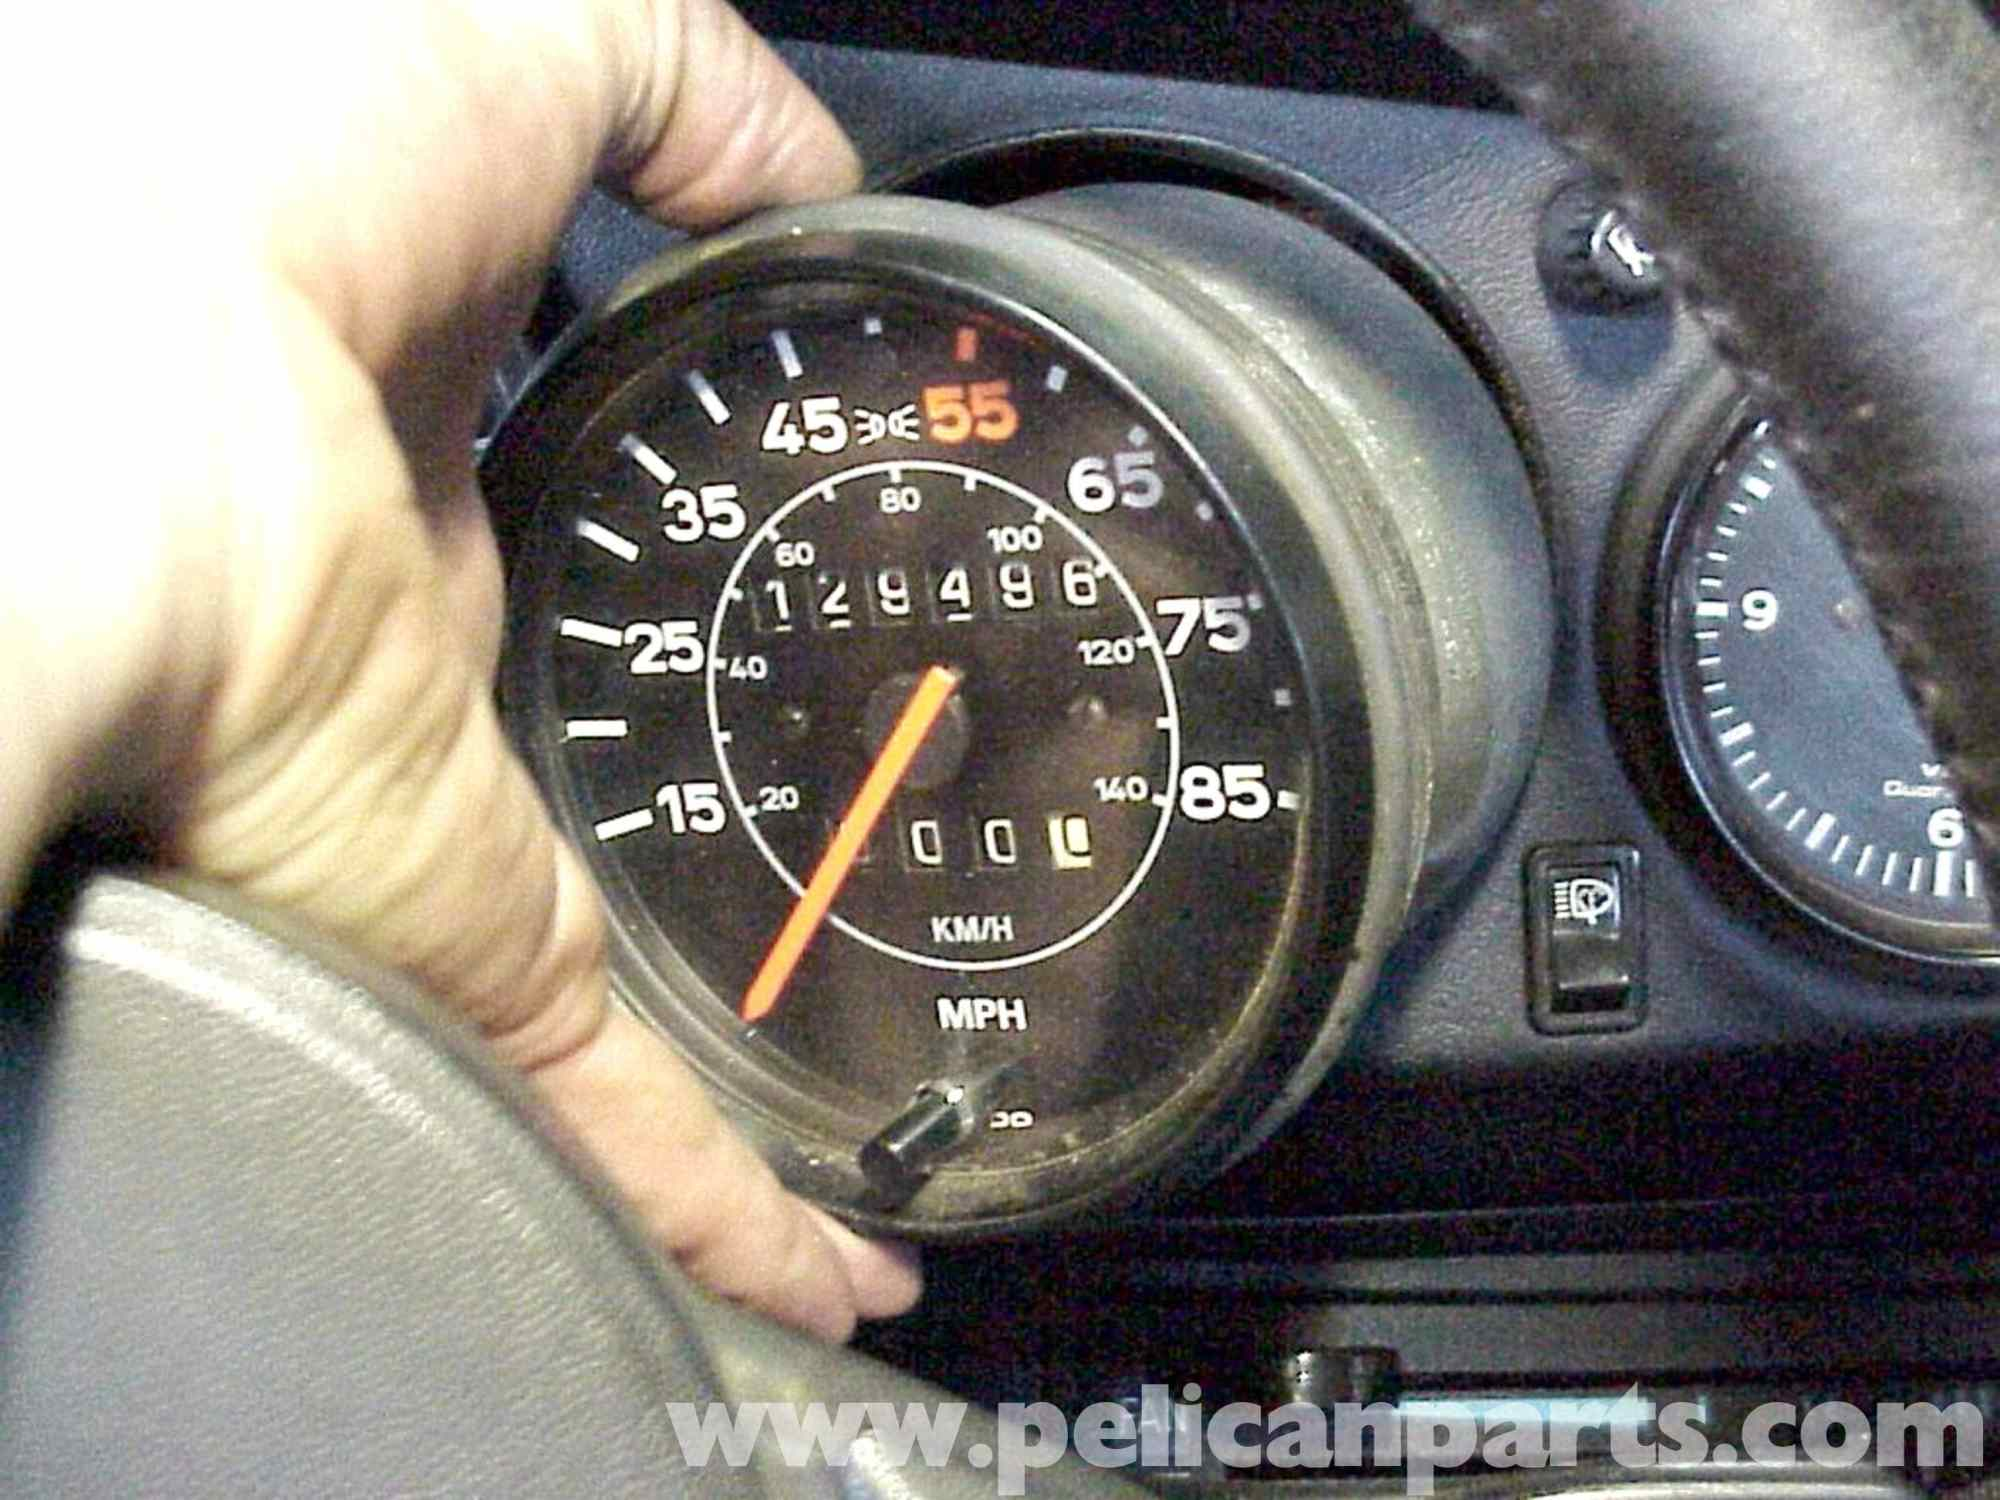 hight resolution of porsche 911 speedometer removal 911 1965 89 930 turbo 1975 89 rh pelicanparts com 1975 911 tach wiring diagram